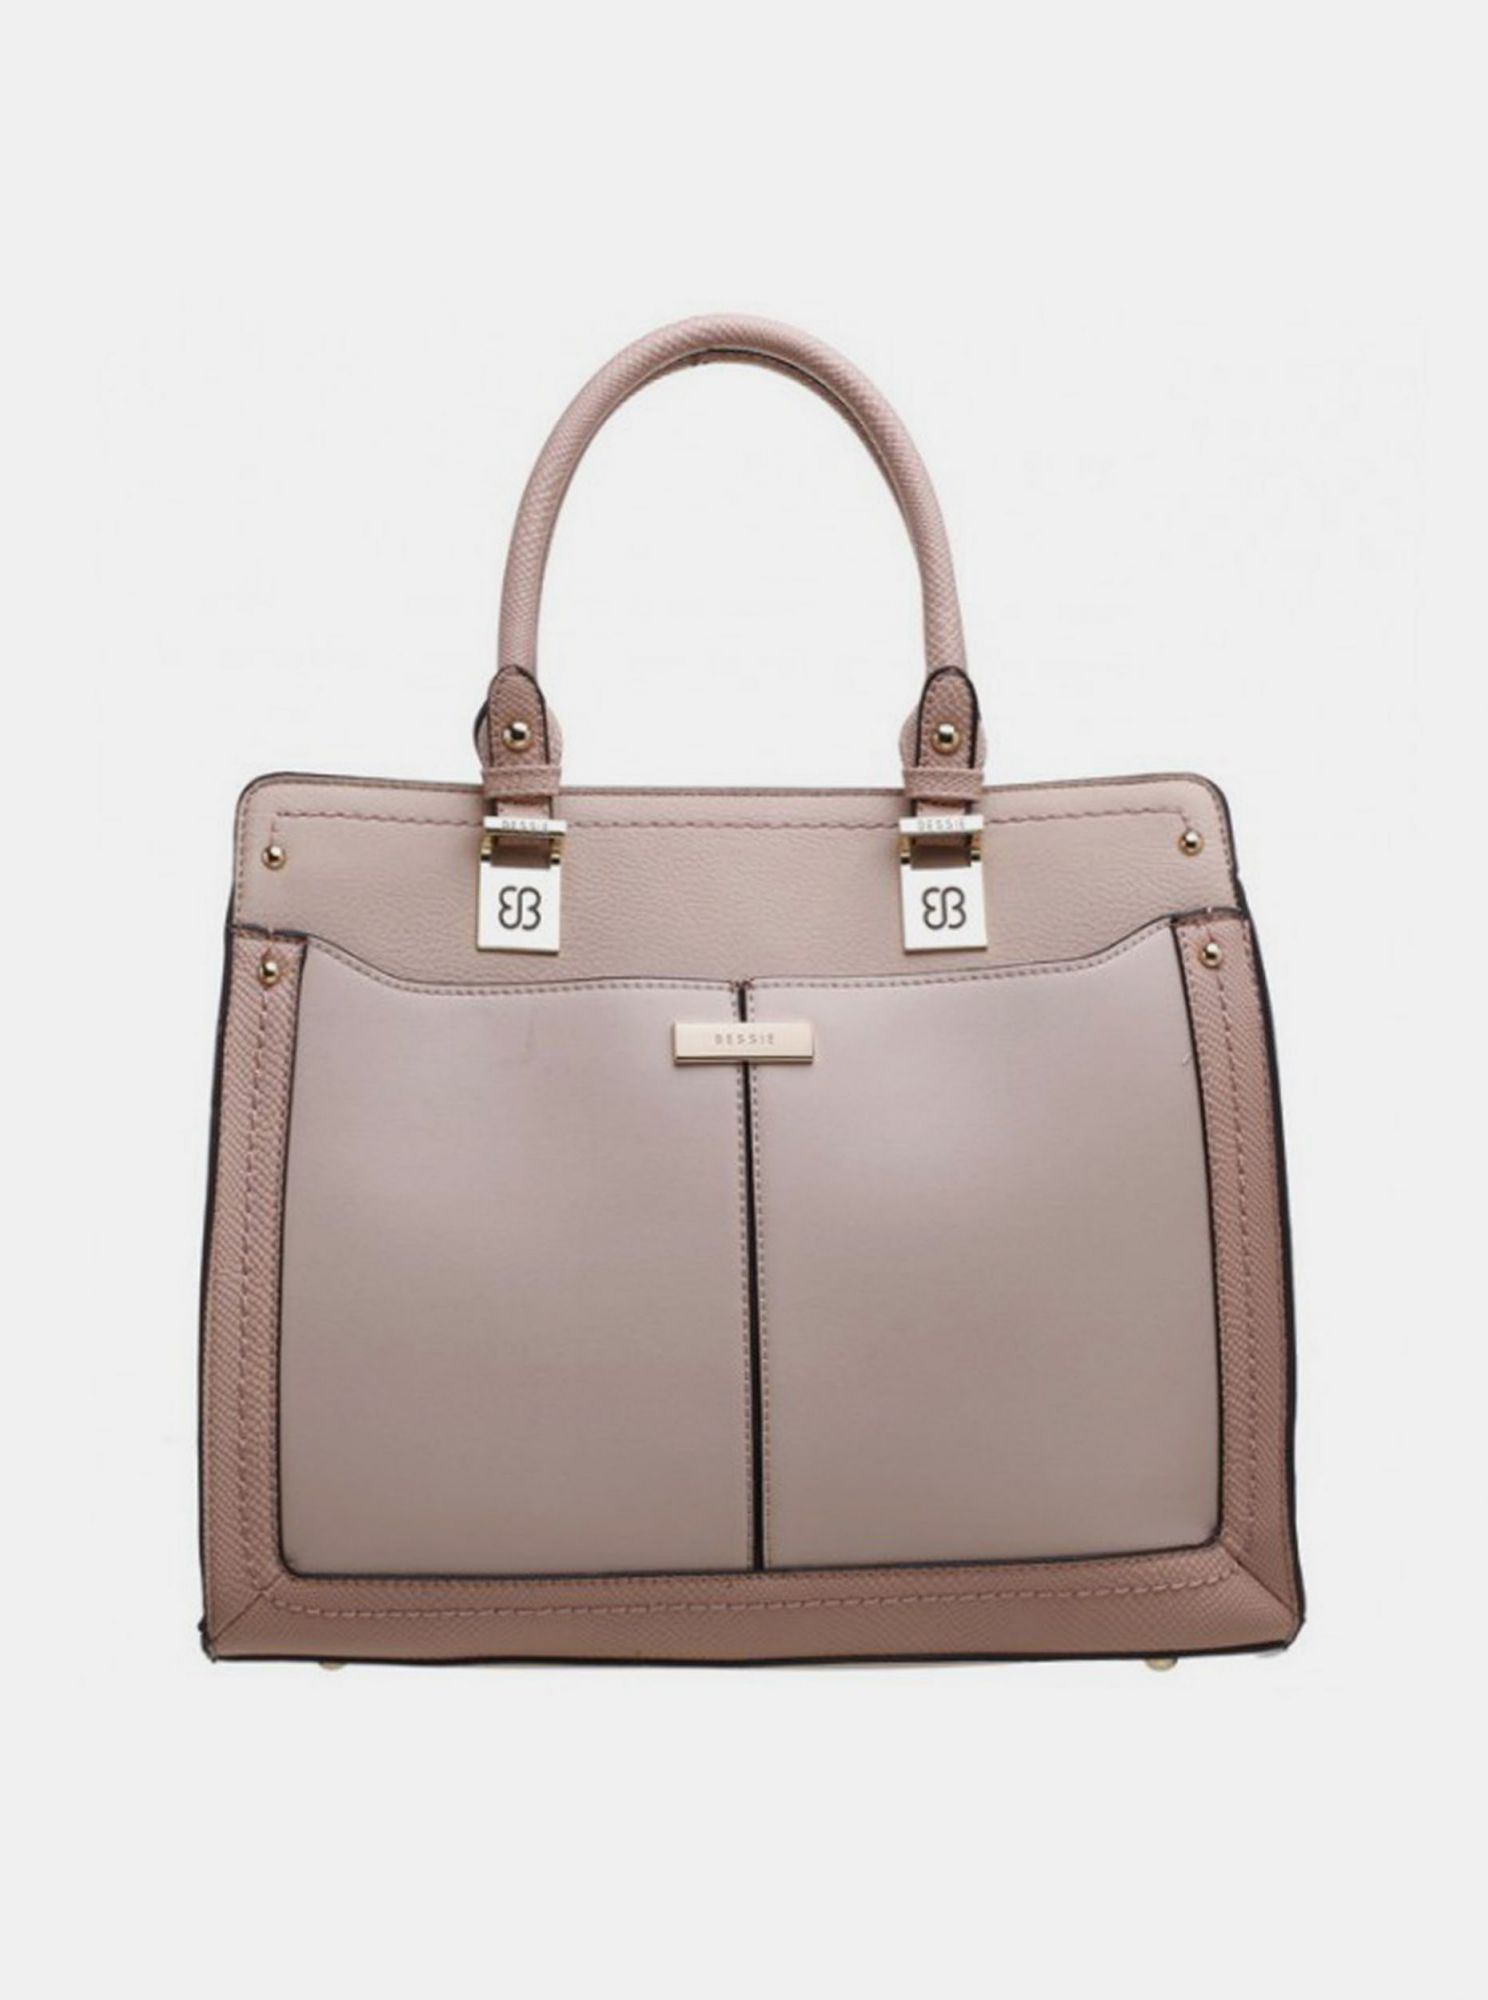 Borsa Bessie London rosa antico